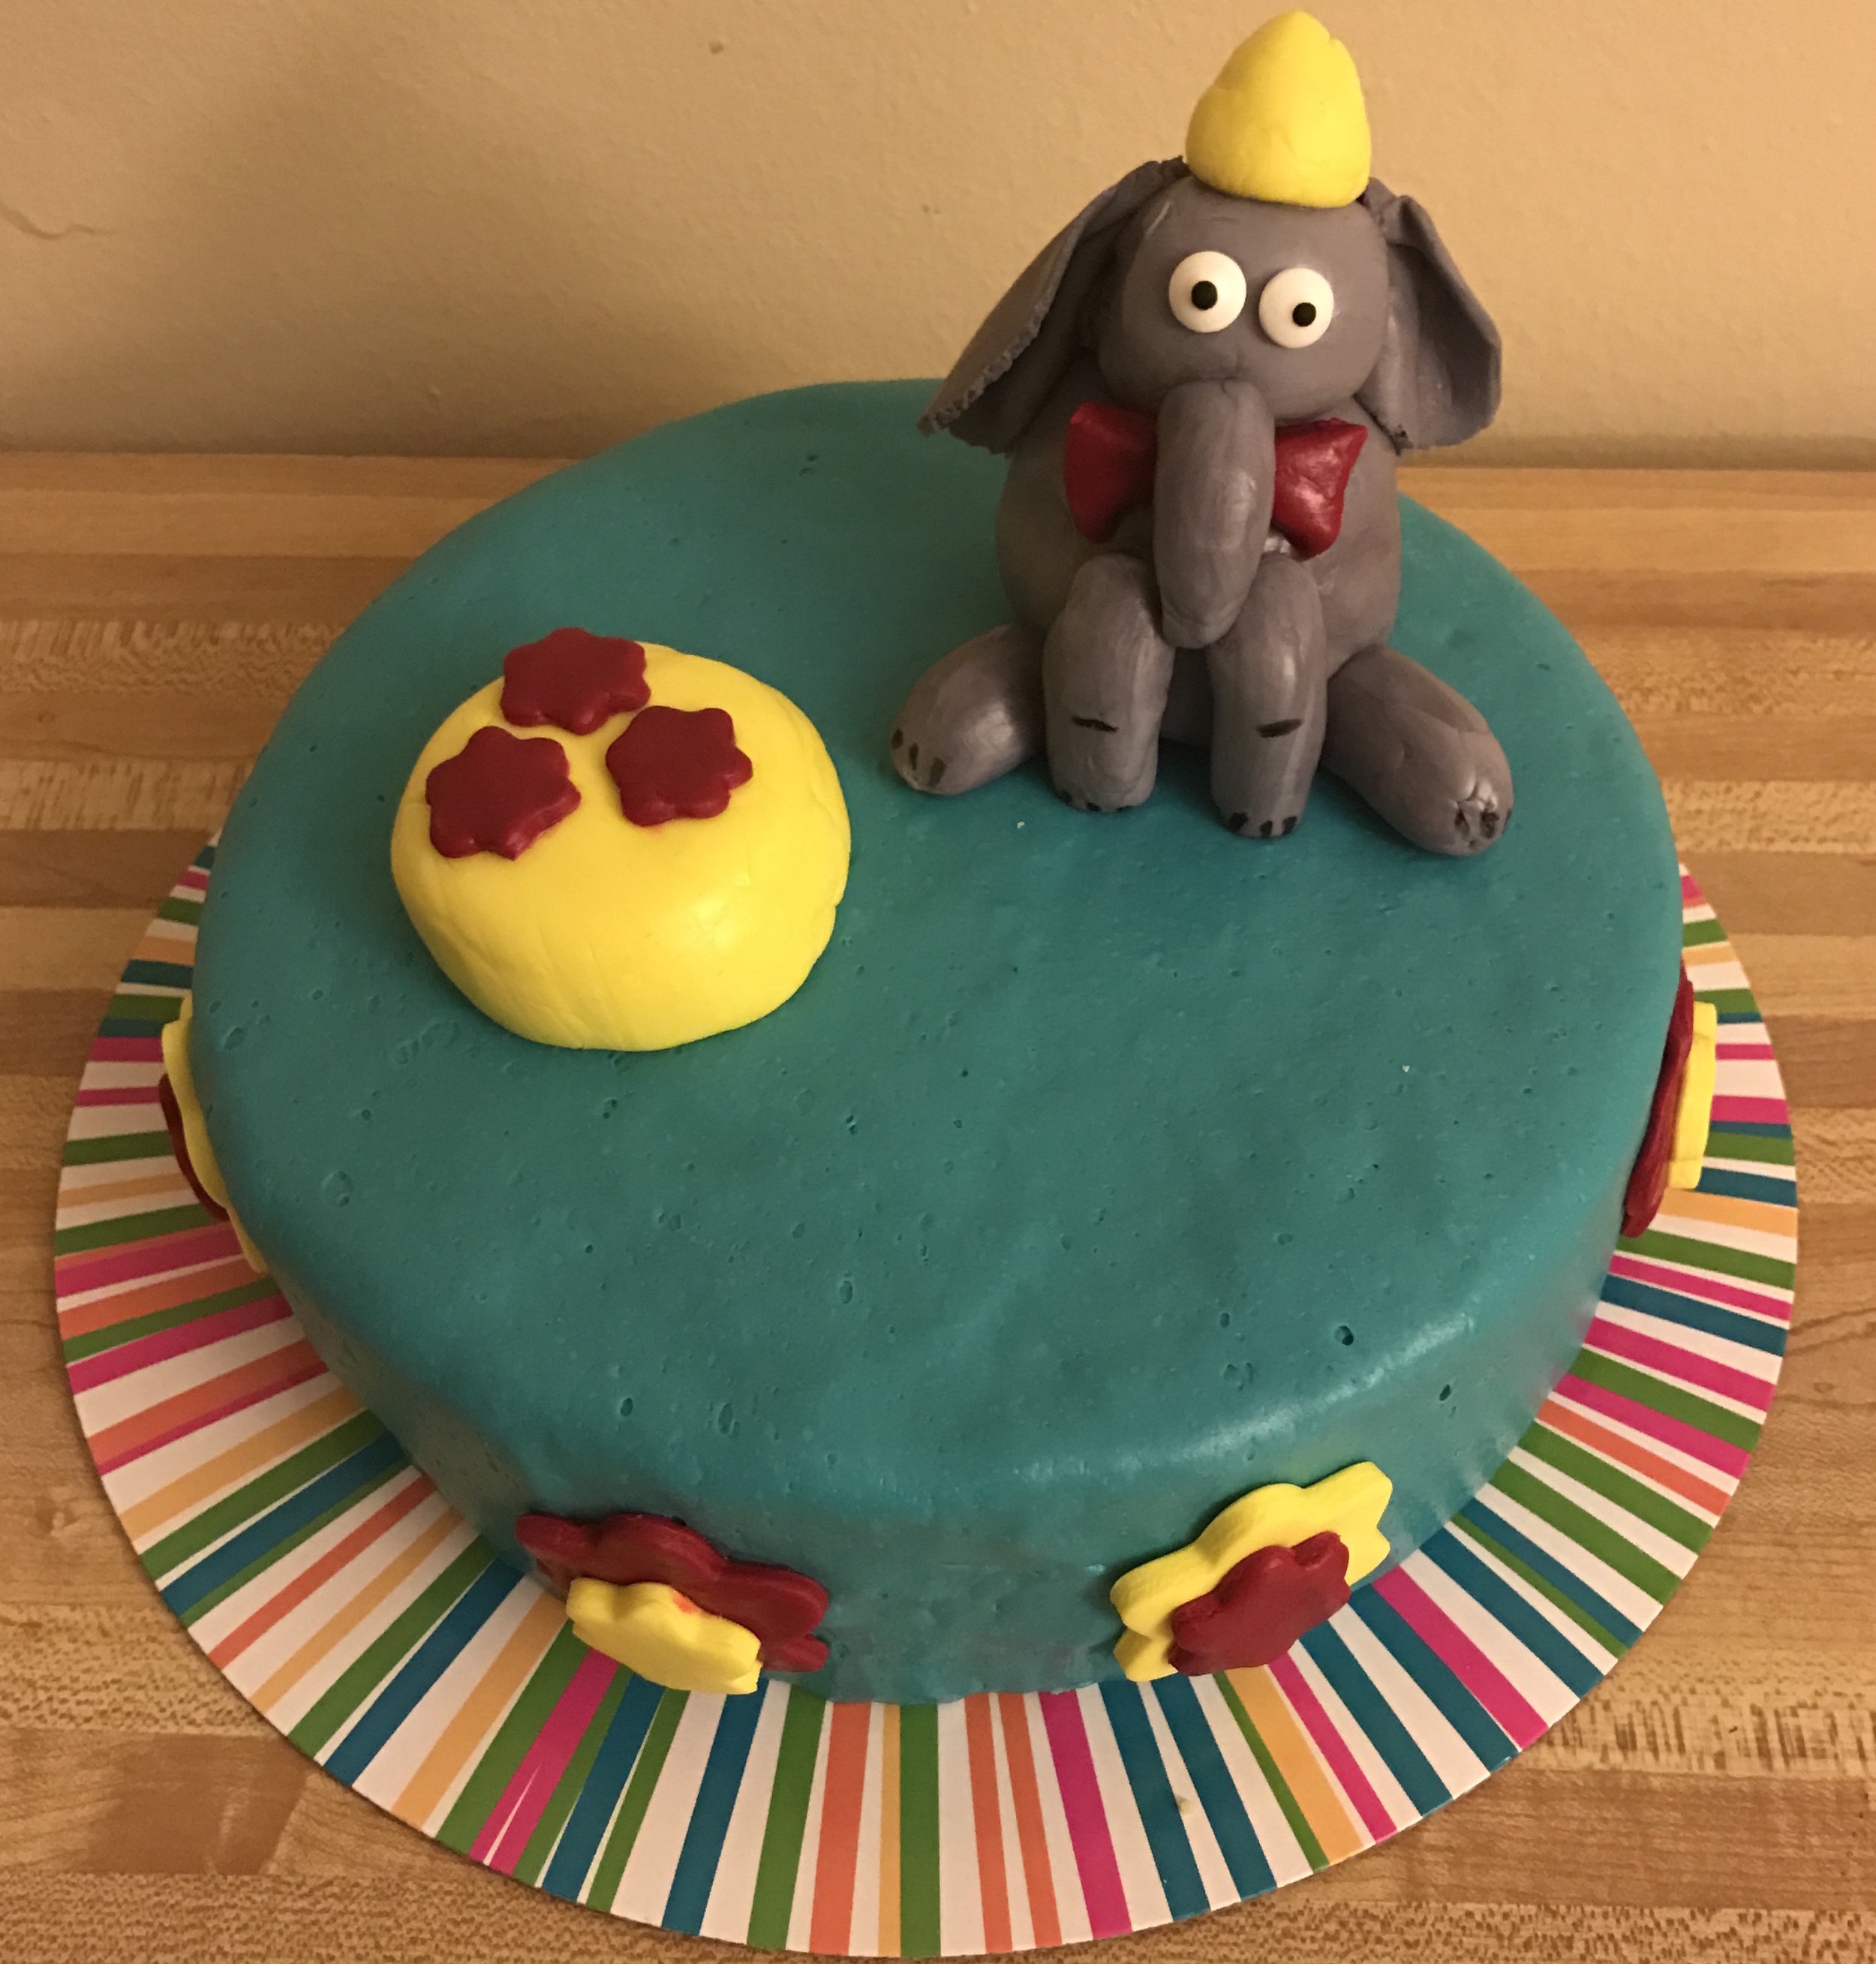 gFKateWebcakeelephant.JPG